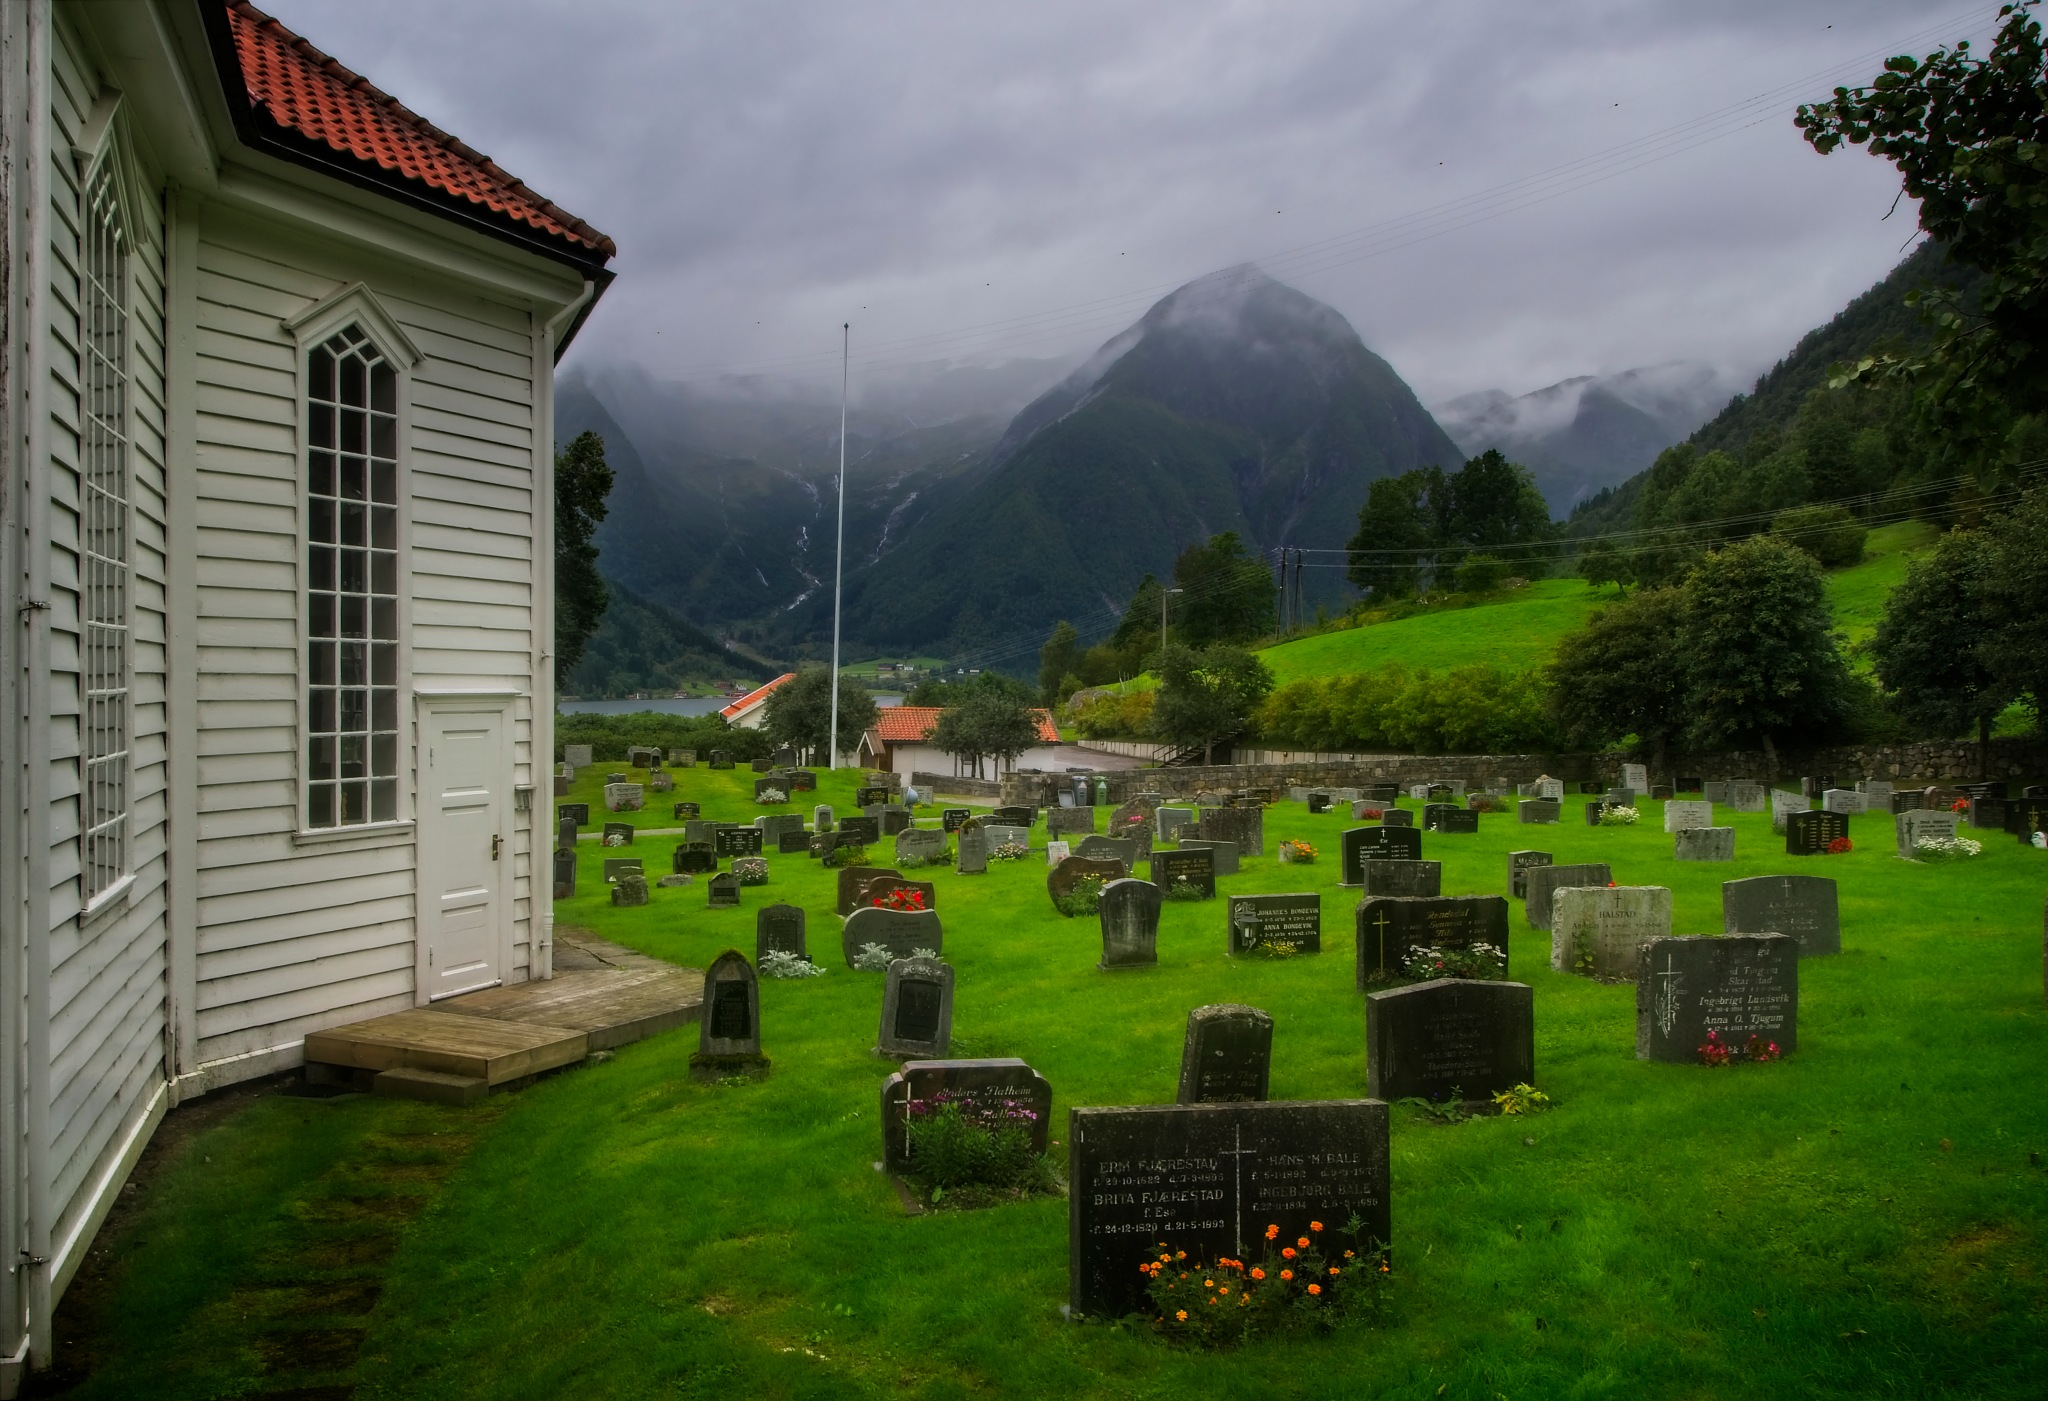 Mountains and Gravestones by Keith Page